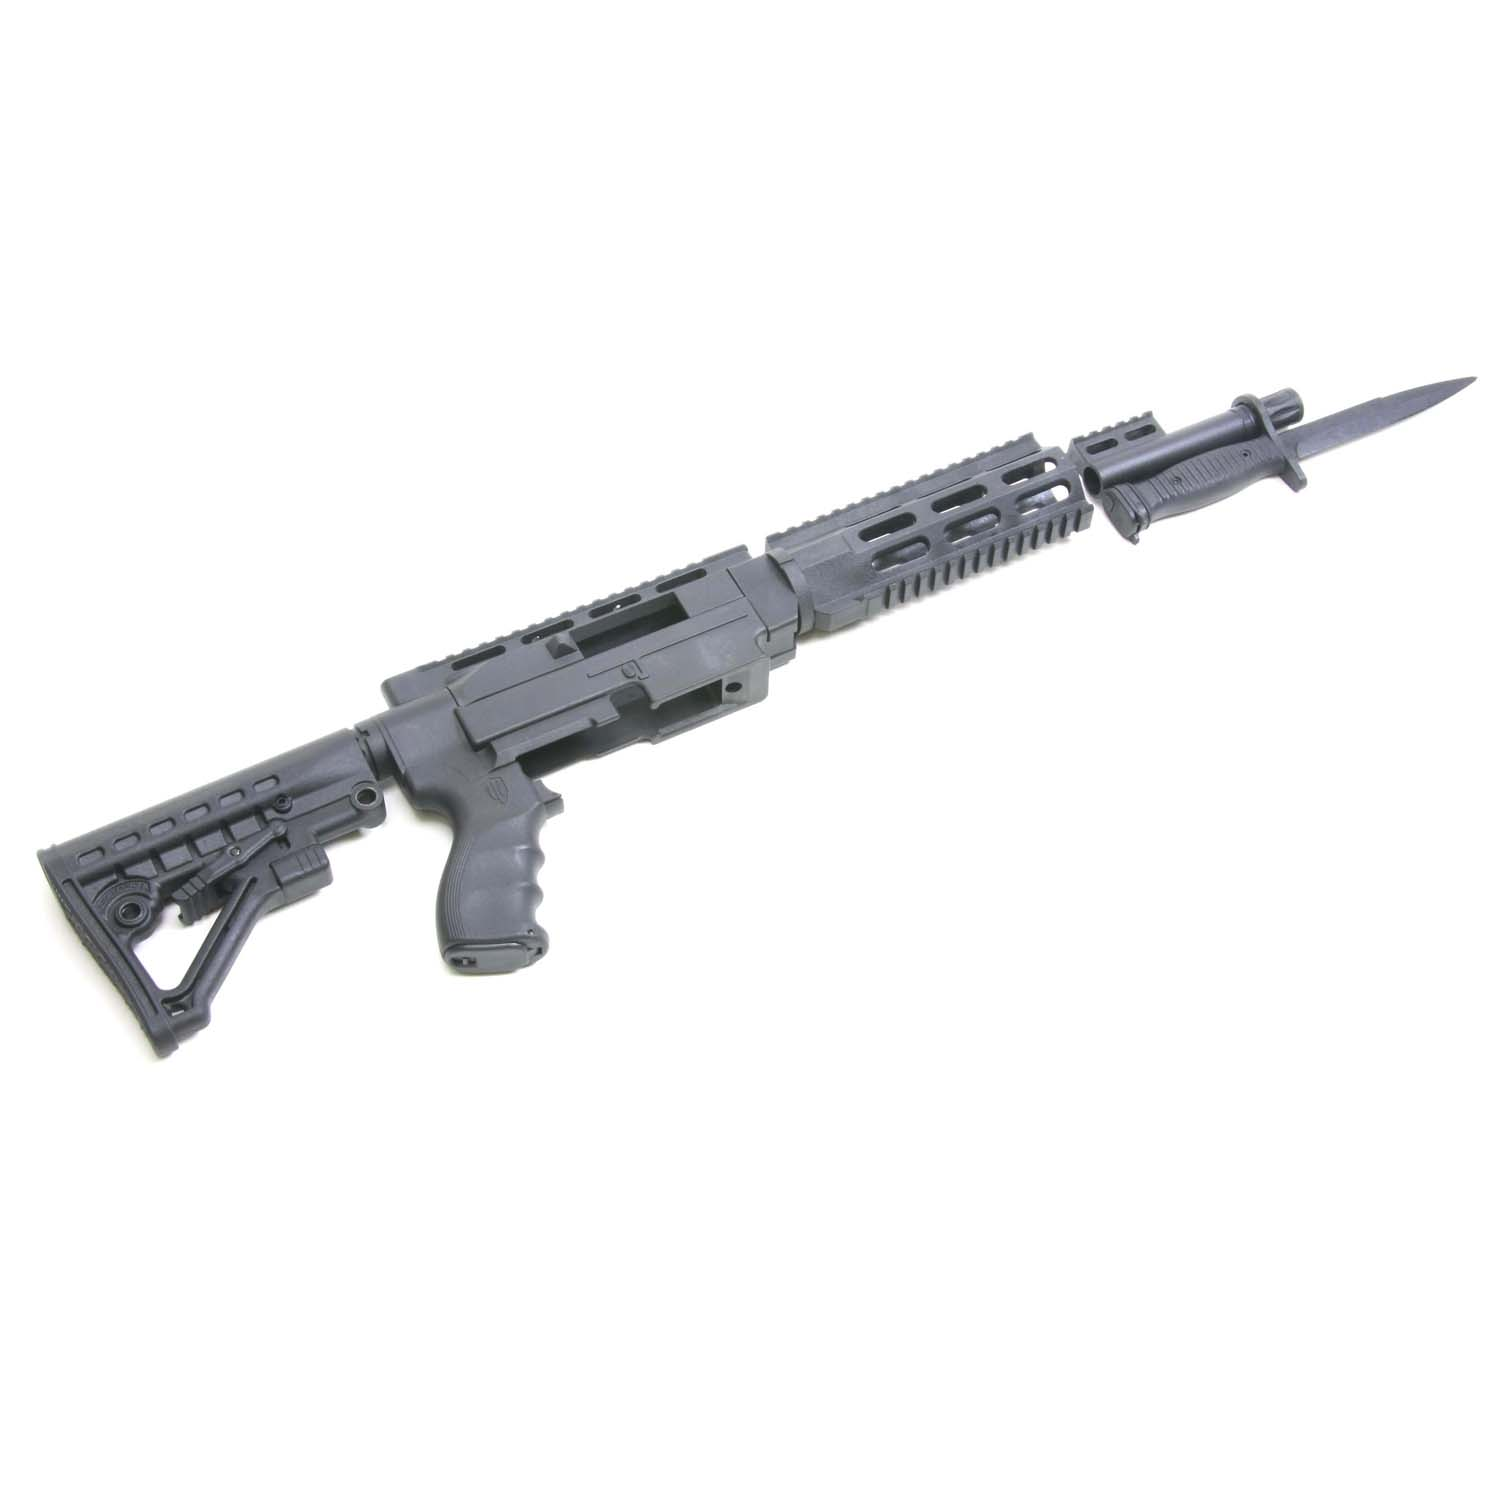 Scoop Straight Pull Rifles together with Moon Tide besides Range Rover further New Precision Shooters Bother With A 308 besides 5x Handheld Hand Held Magnifying Glass Lens 75mm. on sporting and hunting